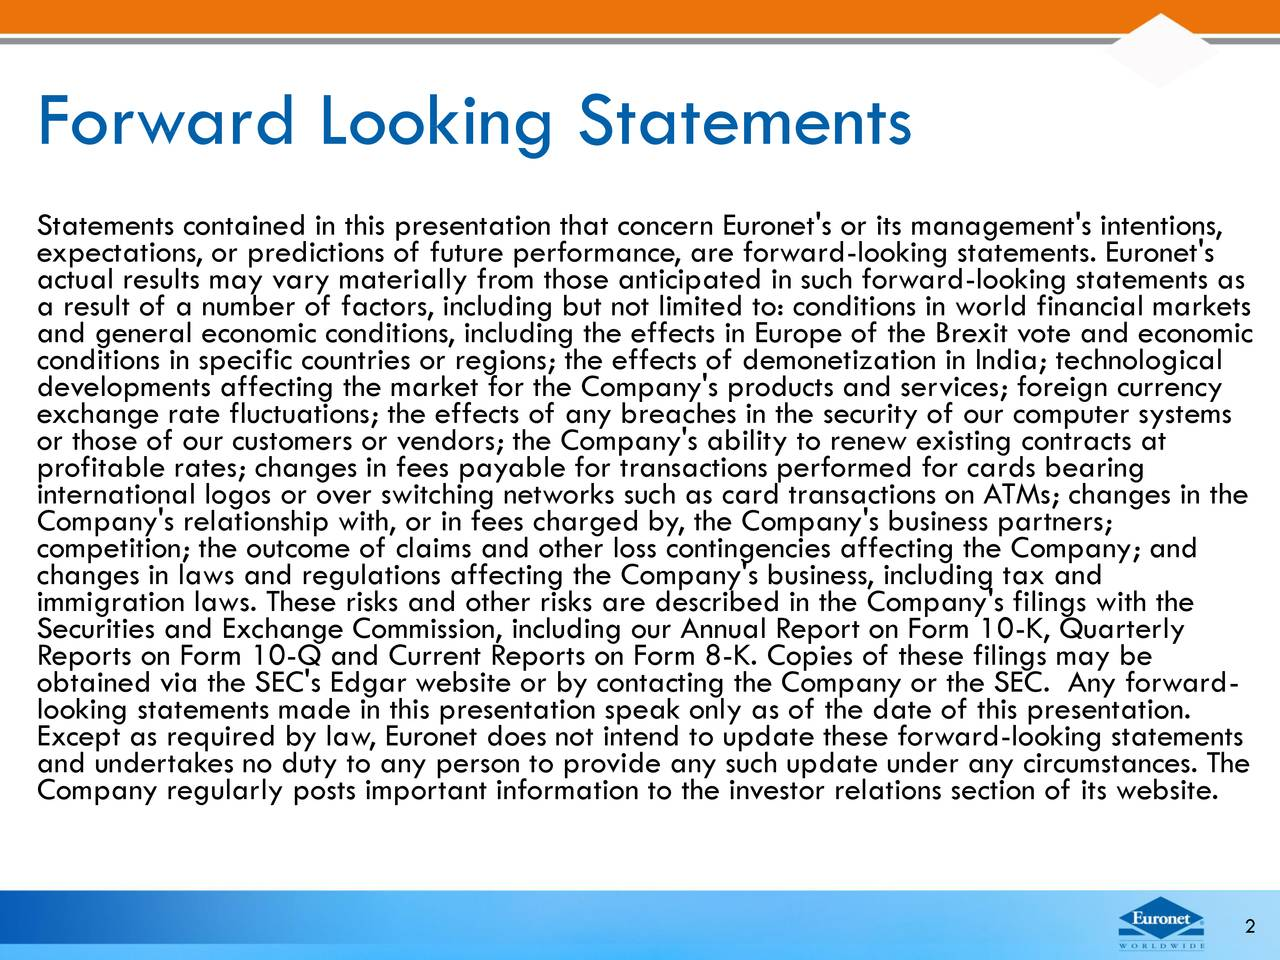 Statements contained in this presentation that concern Euronet's or its management's intentions, actual results may vary materially from those anticipated in such forward-looking statements as a result of a number of factors, including but not limited to: conditions in world financial markets and general economic conditions, including the effects in Europe of the Brexit vote and economic conditions in specific countries or regions; the effects of demonetization in India; technological exchange rate fluctuations; the effects of any breaches in the security of our computer systems or those of our customers or vendors; the Company's ability to renew existing contracts at profitable rates; changes in fees payable for transactions performed for cards bearing Company's relationship with, or in fees charged by, the Company's business partners;anges in the competition; the outcome of claims and other loss contingencies affecting the Company; and changes in laws and regulations affecting the Company's business, including tax and immigration laws. These risks and other risks are described in the Company's filings with the Reports on Form 10-Q and Current Reports on Form 8-K. Copies of these filings may berly obtained via the SEC's Edgar website or by contacting the Company or the SEC. Any forward- looking statements made in this presentation speak only as of the date of this presentation. Except as required by law, Euronet does not intend to update these forward-looking statements Company regularly posts important information to the investor relations section of its website. 2